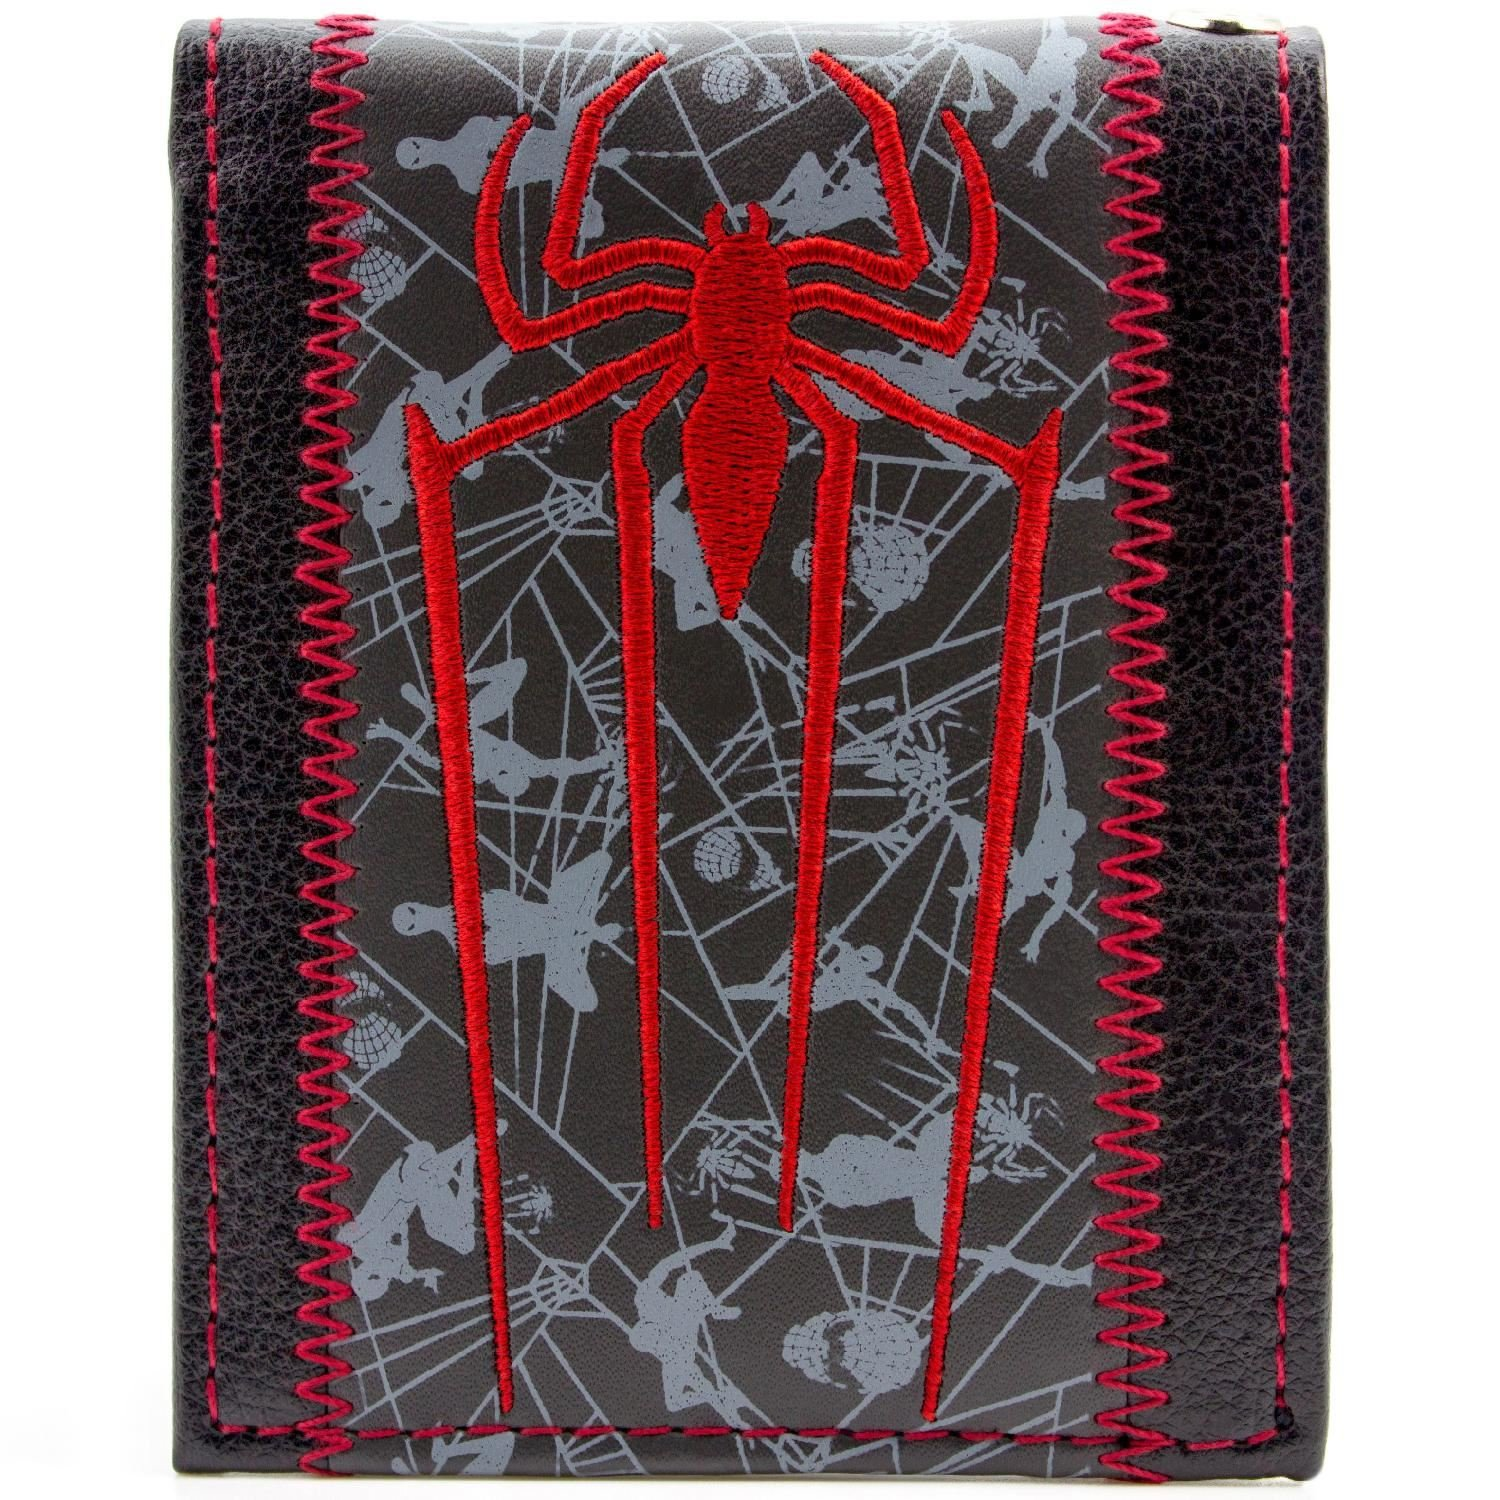 Cartera de Marvel Spider-Man Símbolo de la araña Multicolor 27410